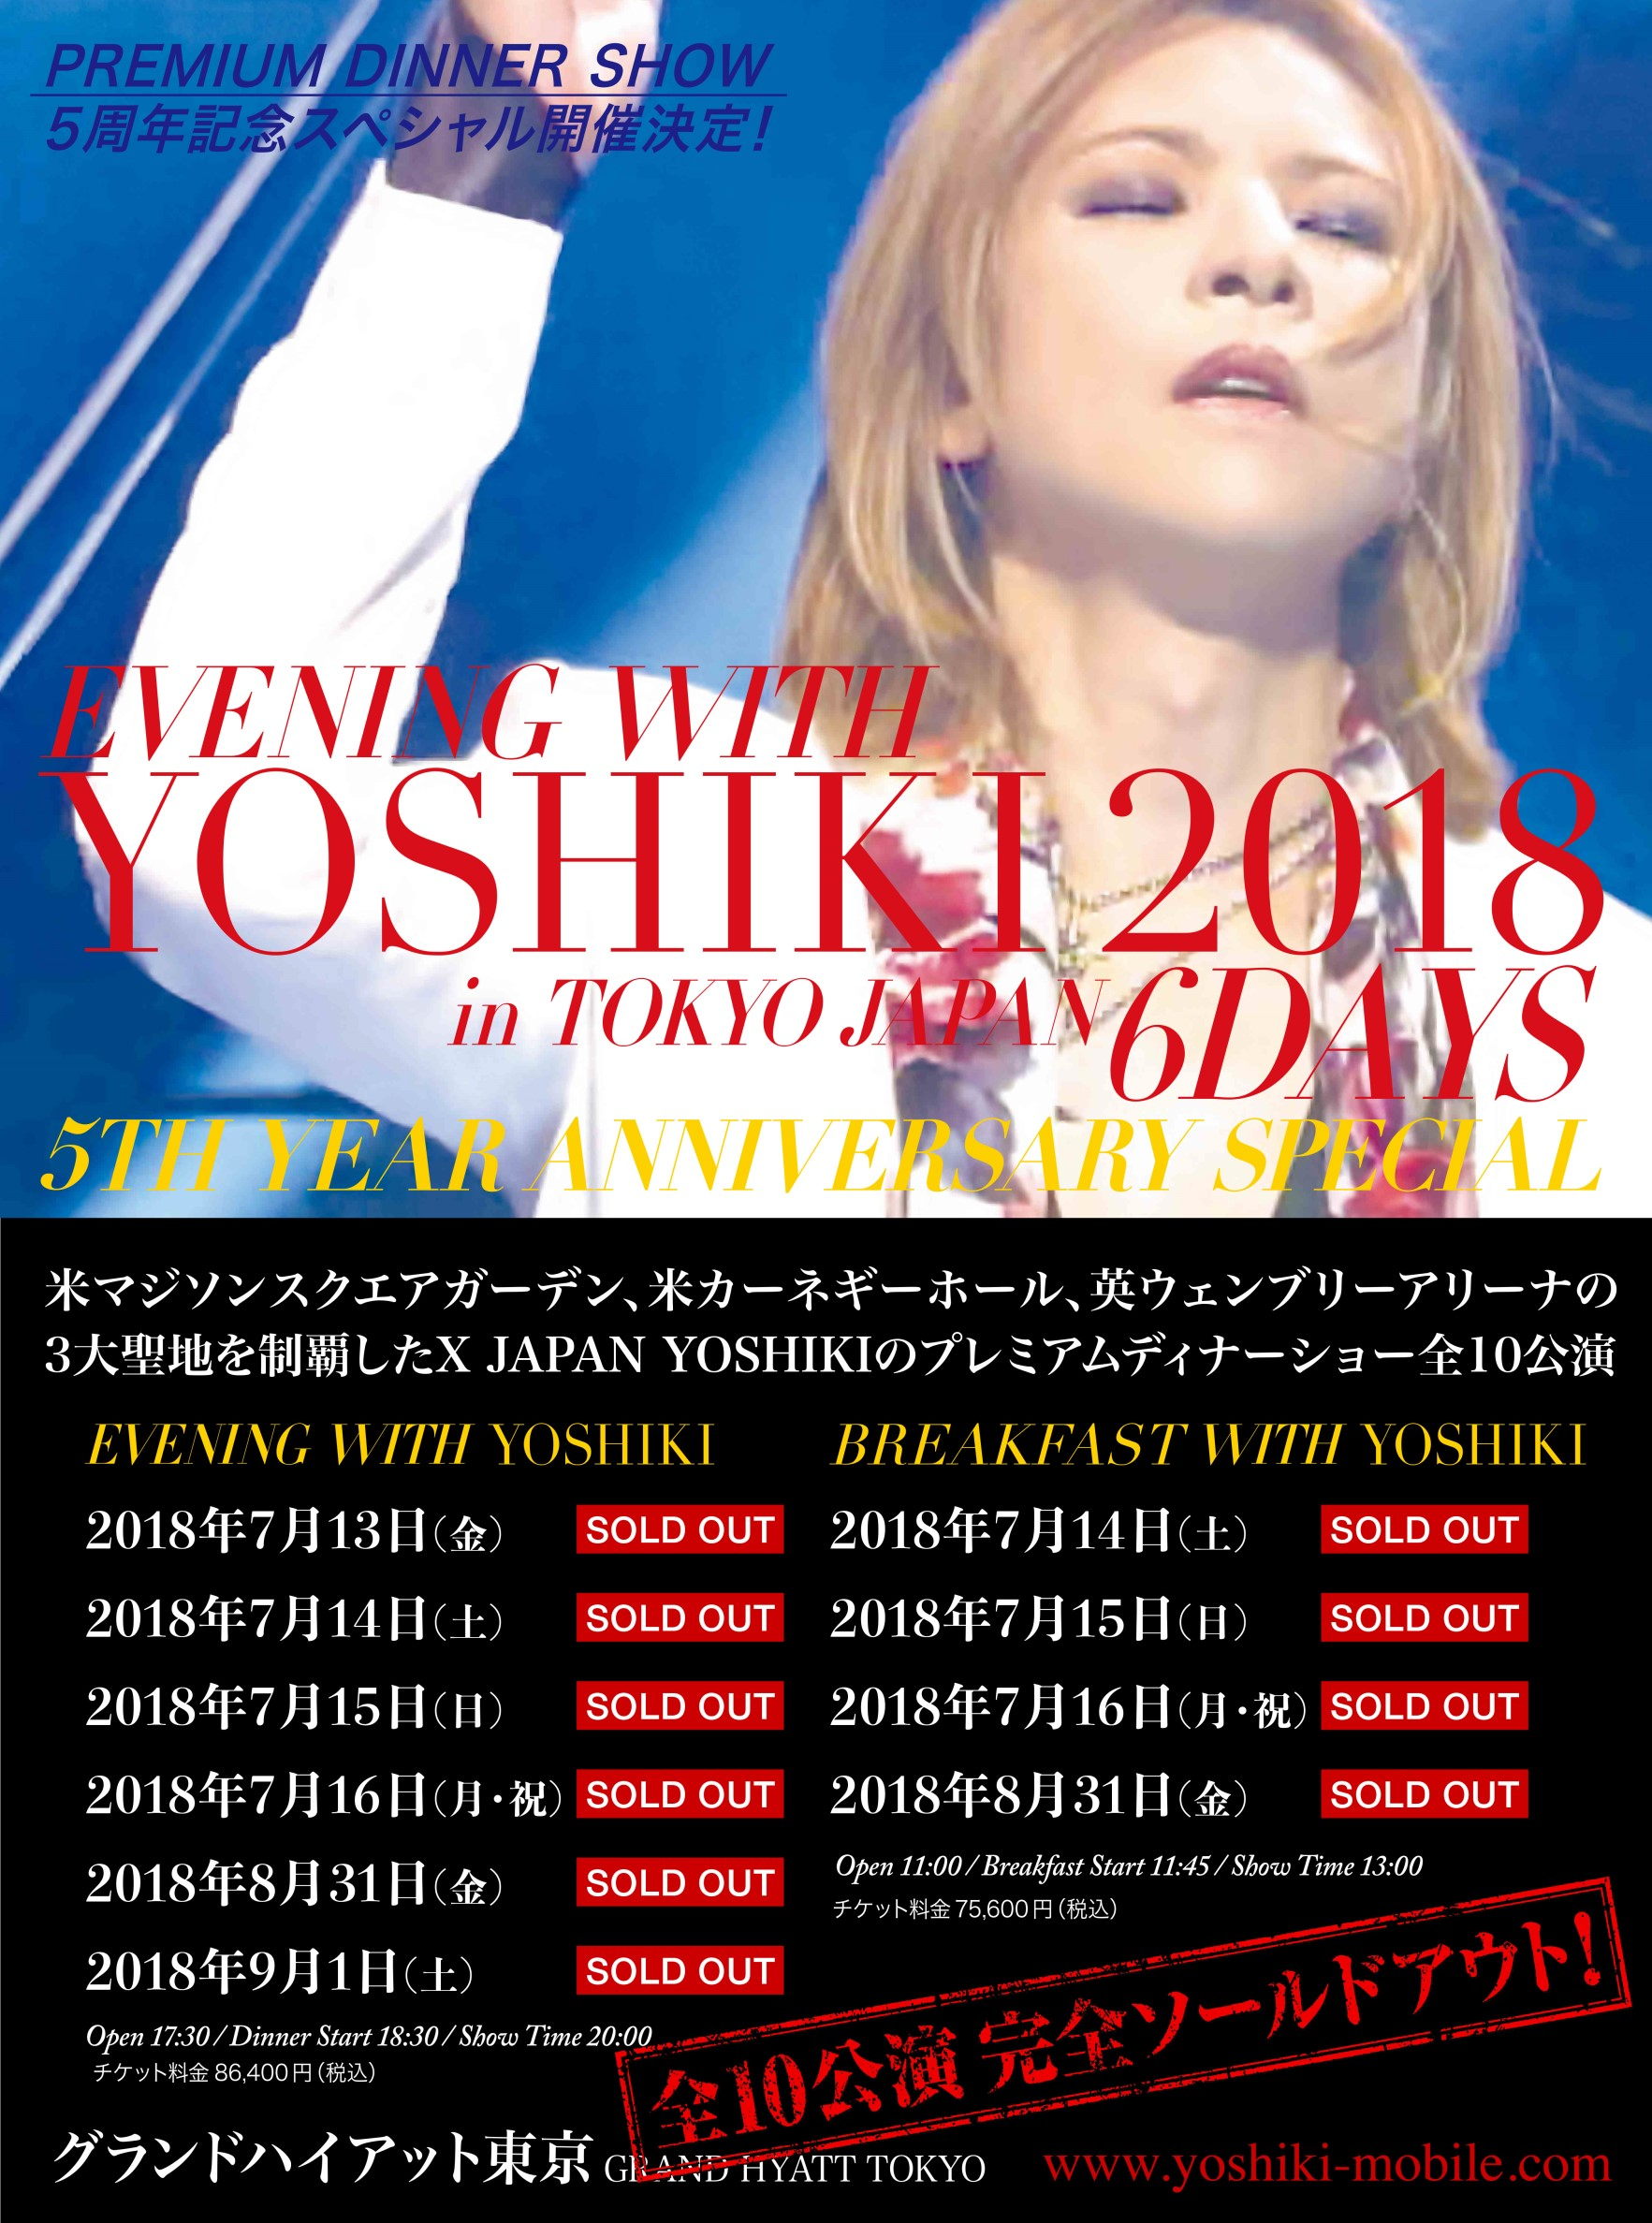 RMMS-Yoshiki-Dinner-Show-5th-Anniversary-2018-Final-M